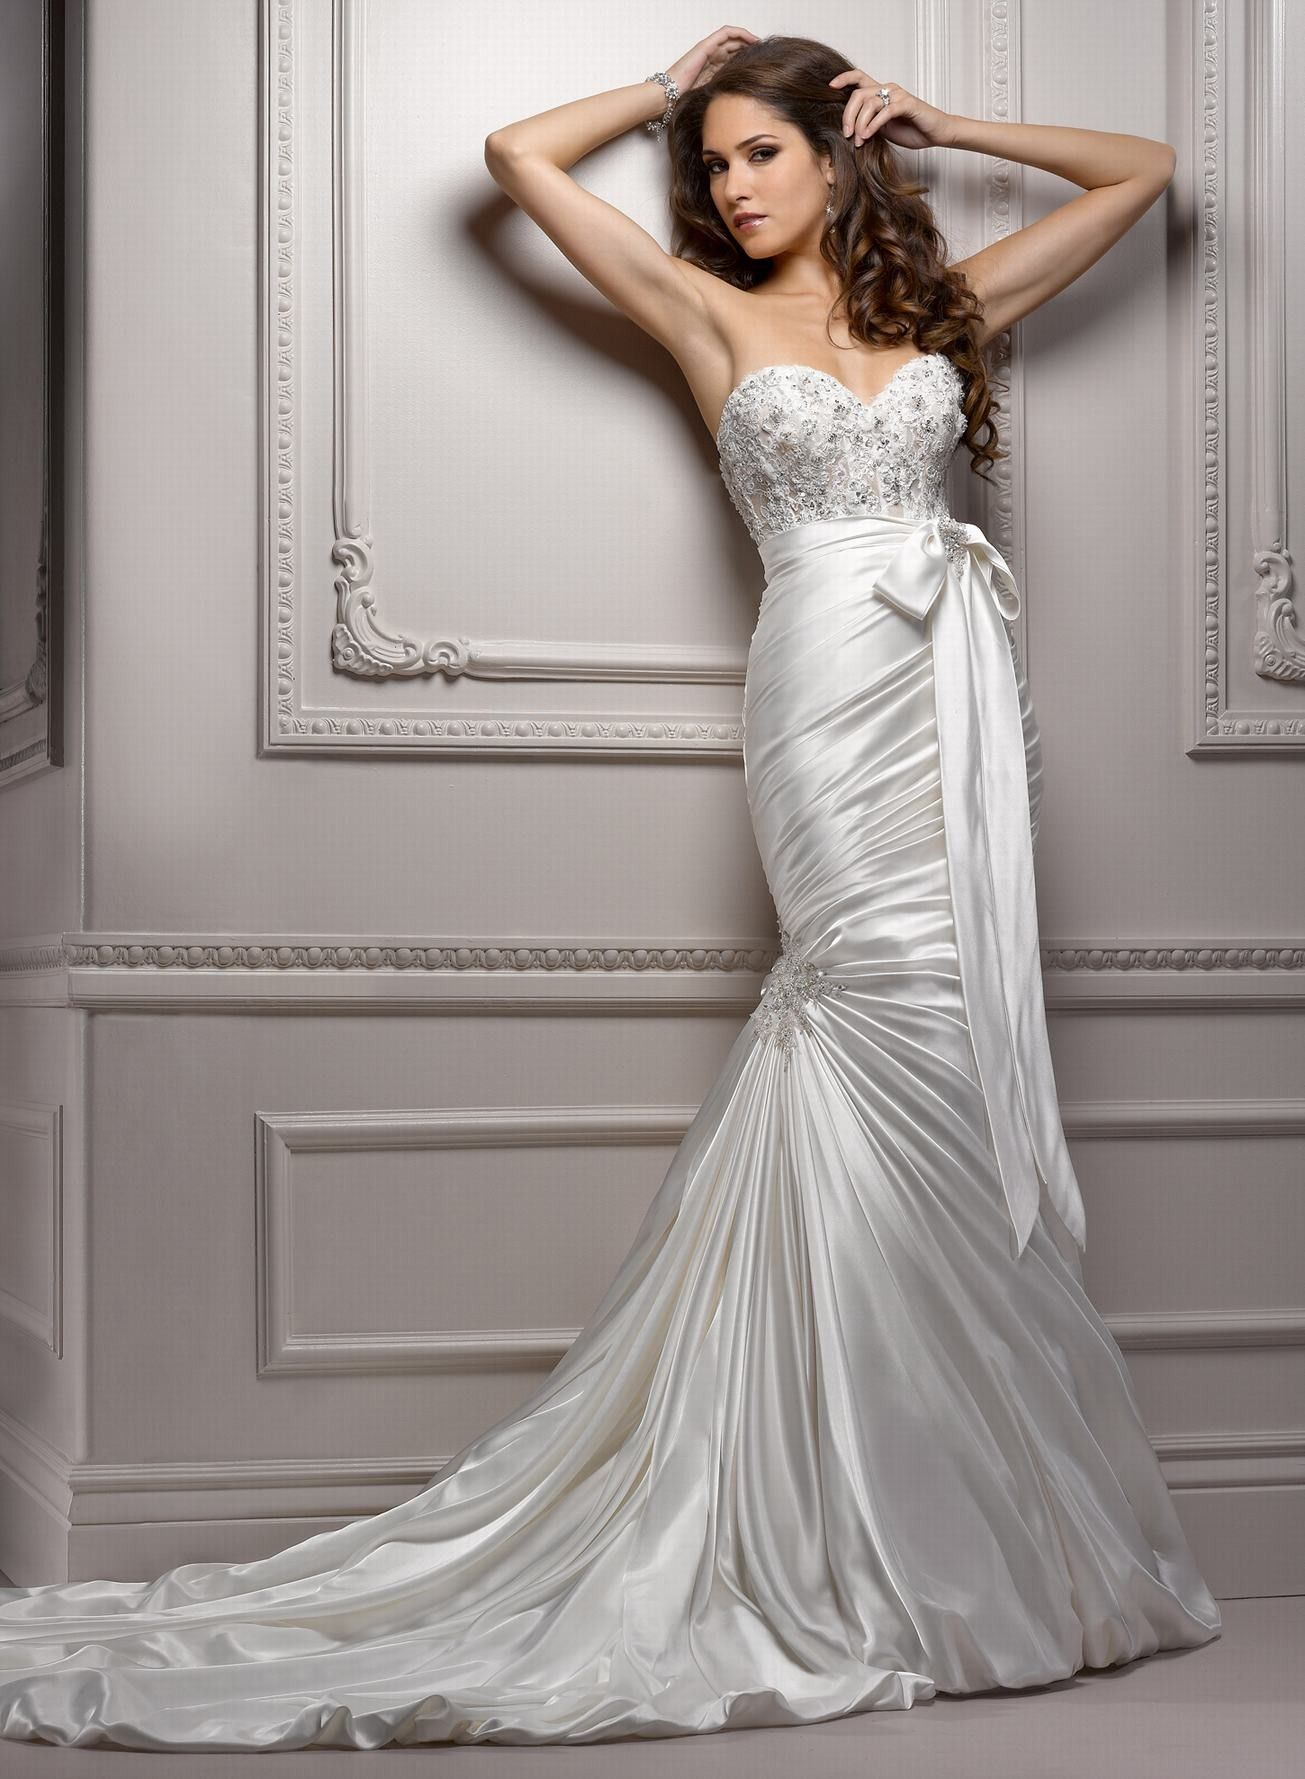 Satin backless wedding dress  Why pay more  wedding dresses  Pinterest  Bridal warehouse